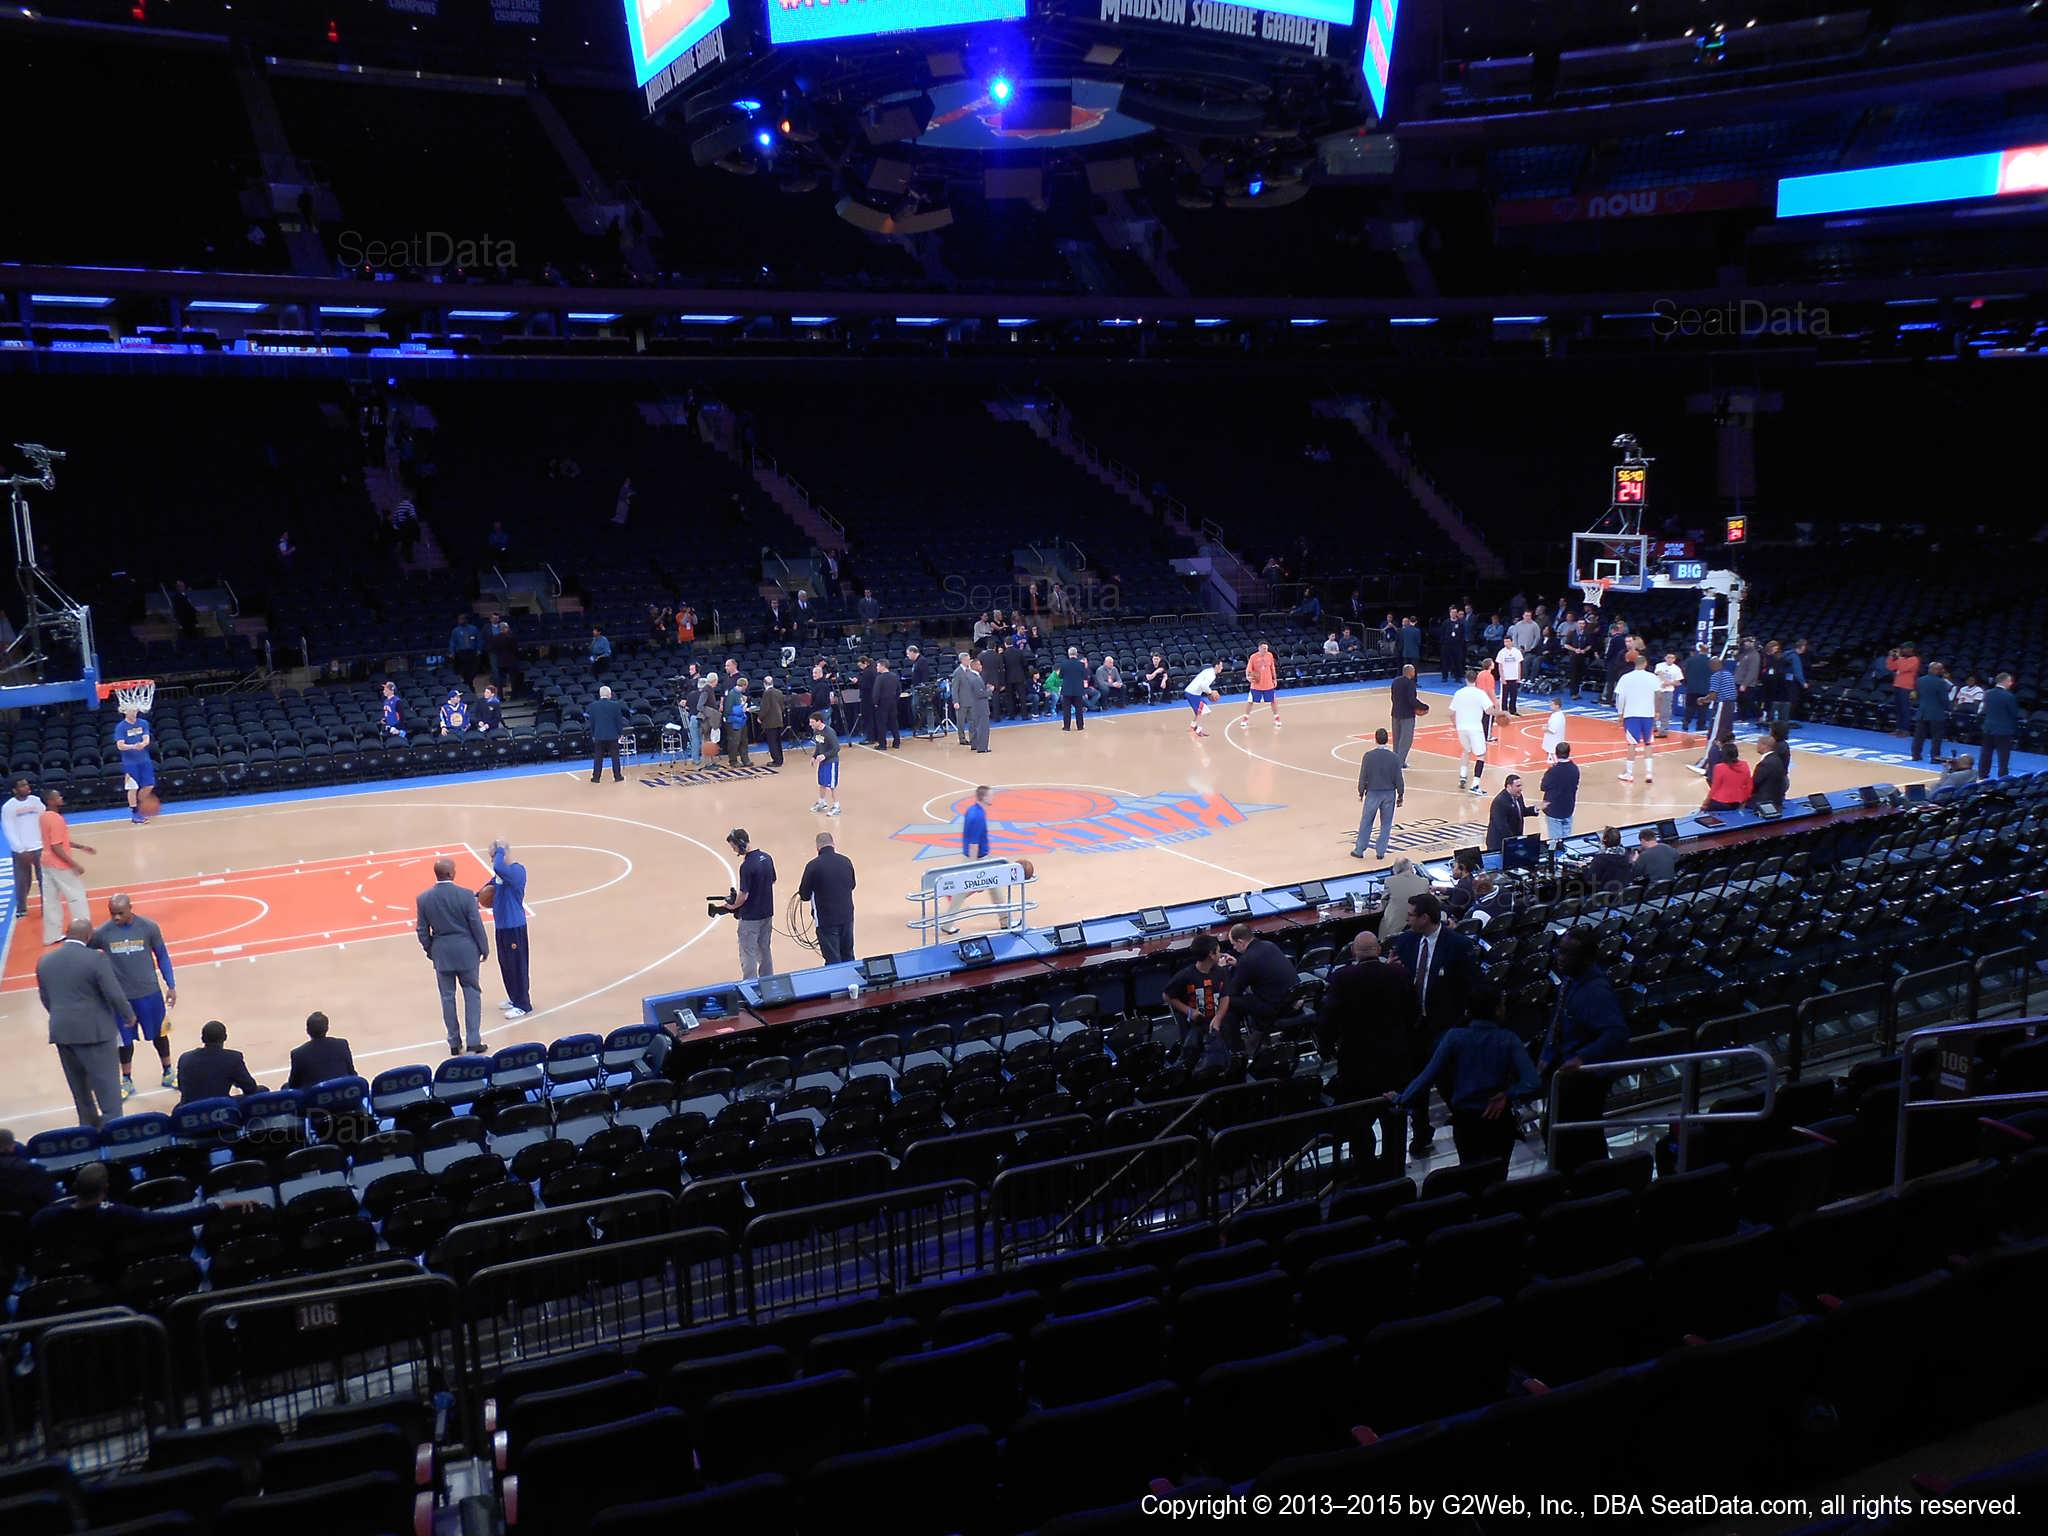 Seat view from section 106 at Madison Square Garden, home of the New York Knicks.